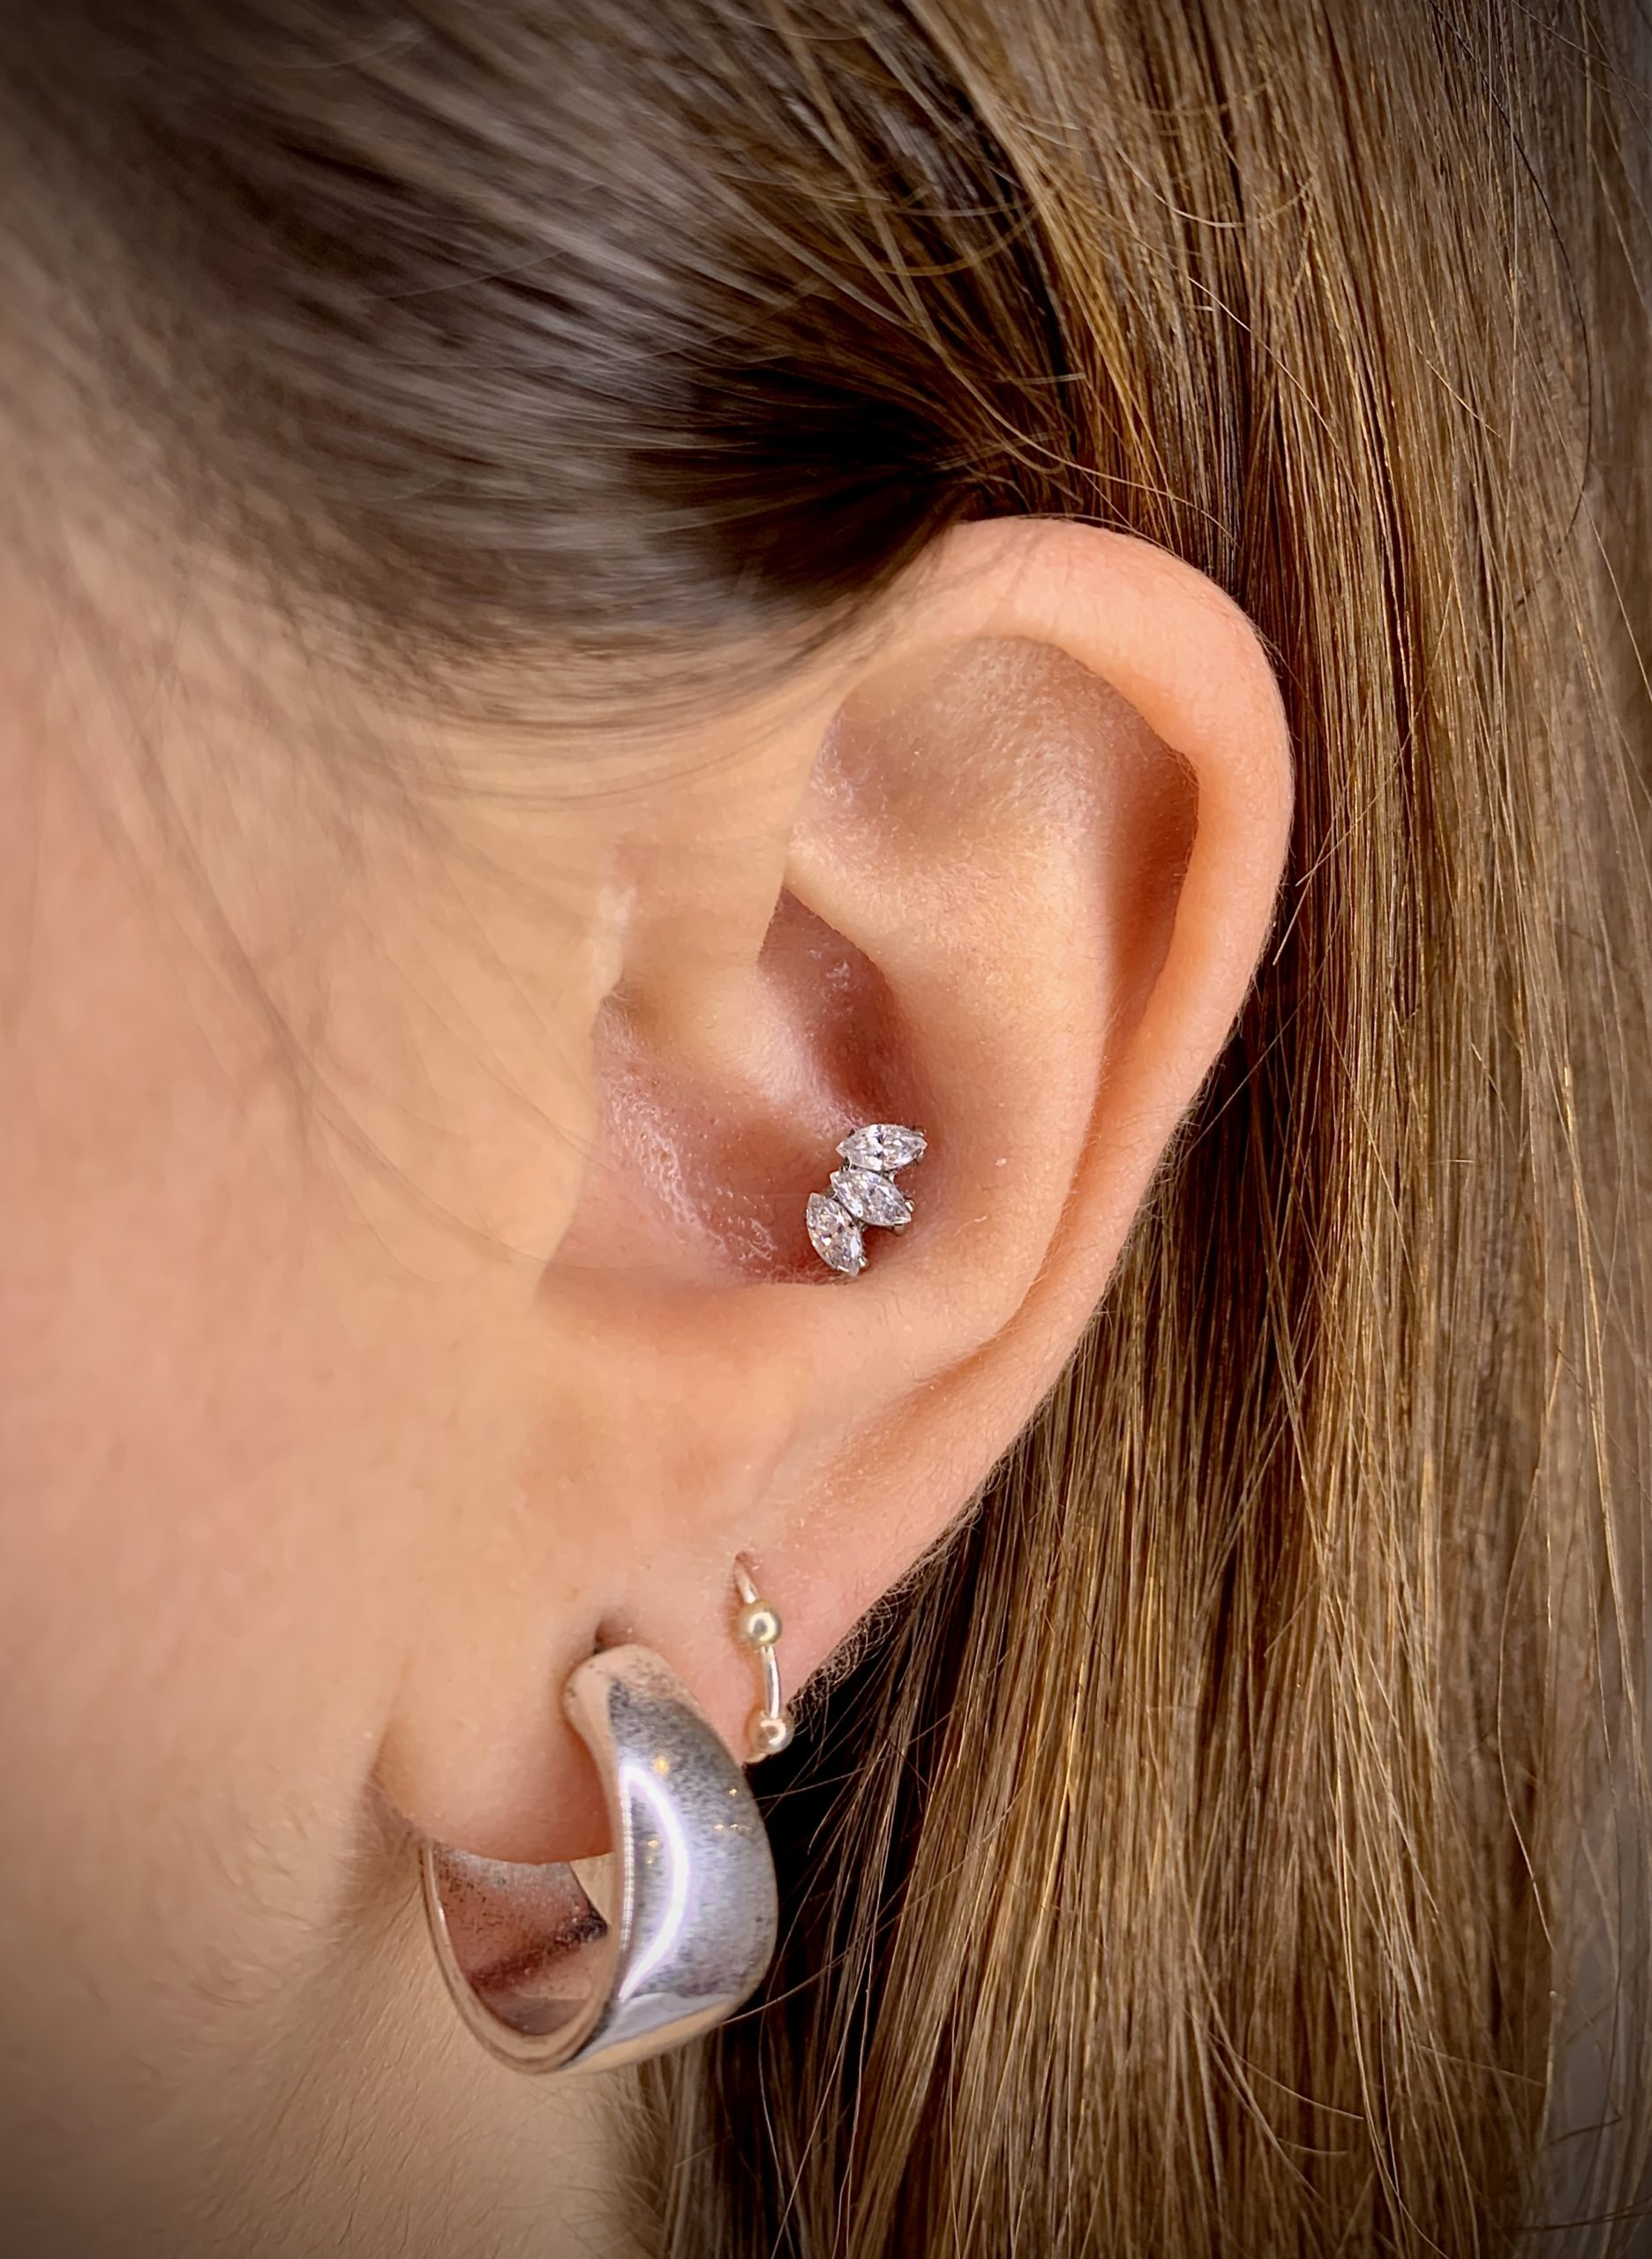 Ear piercing, Conch piercing, Titanium Marquise Fan with Swarovski zirconia from Industrial Strenght. Piercing Barcelona